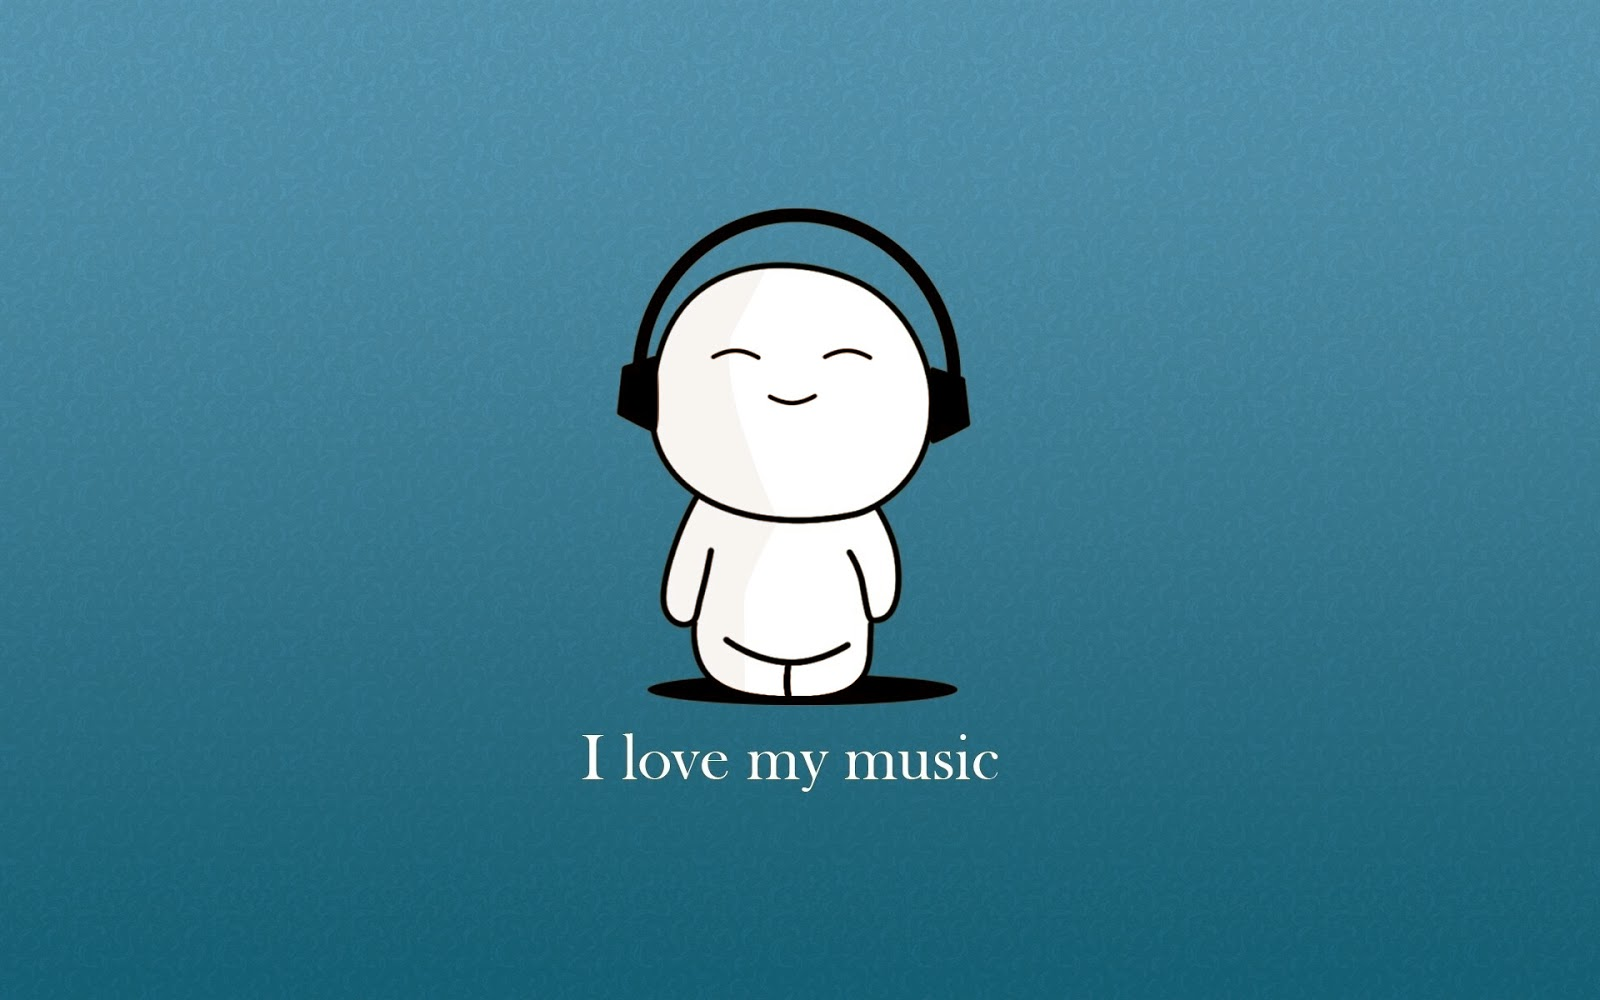 Love U cartoon Wallpaper : I Love Music cartoon Wallpaper ~ Free cartoon Wallpapers